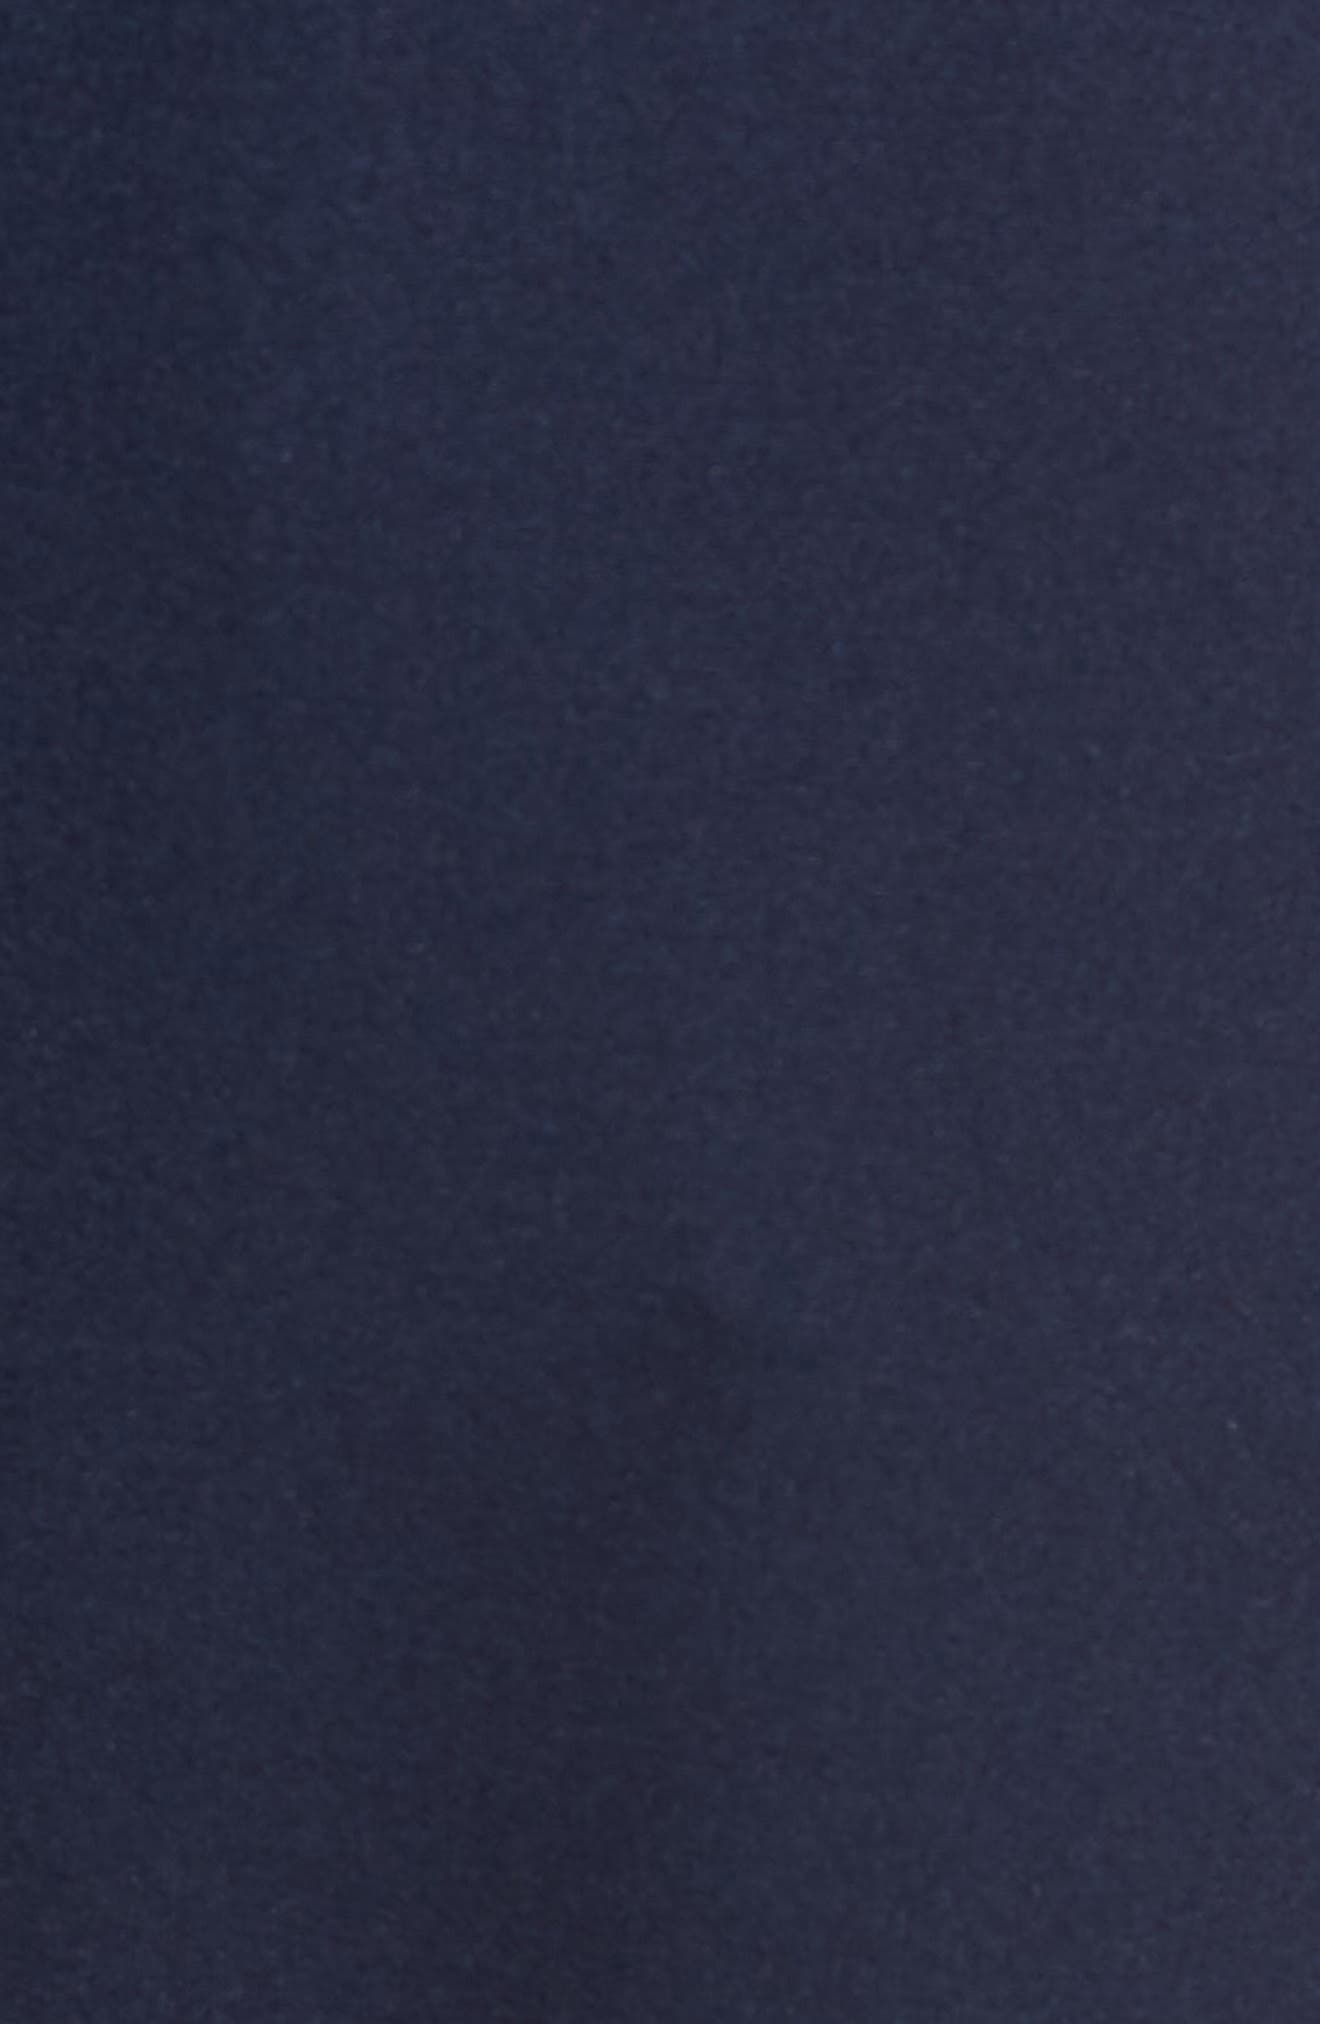 Therma Lounge Pants,                             Alternate thumbnail 5, color,                             Cruise Navy/ Nevis